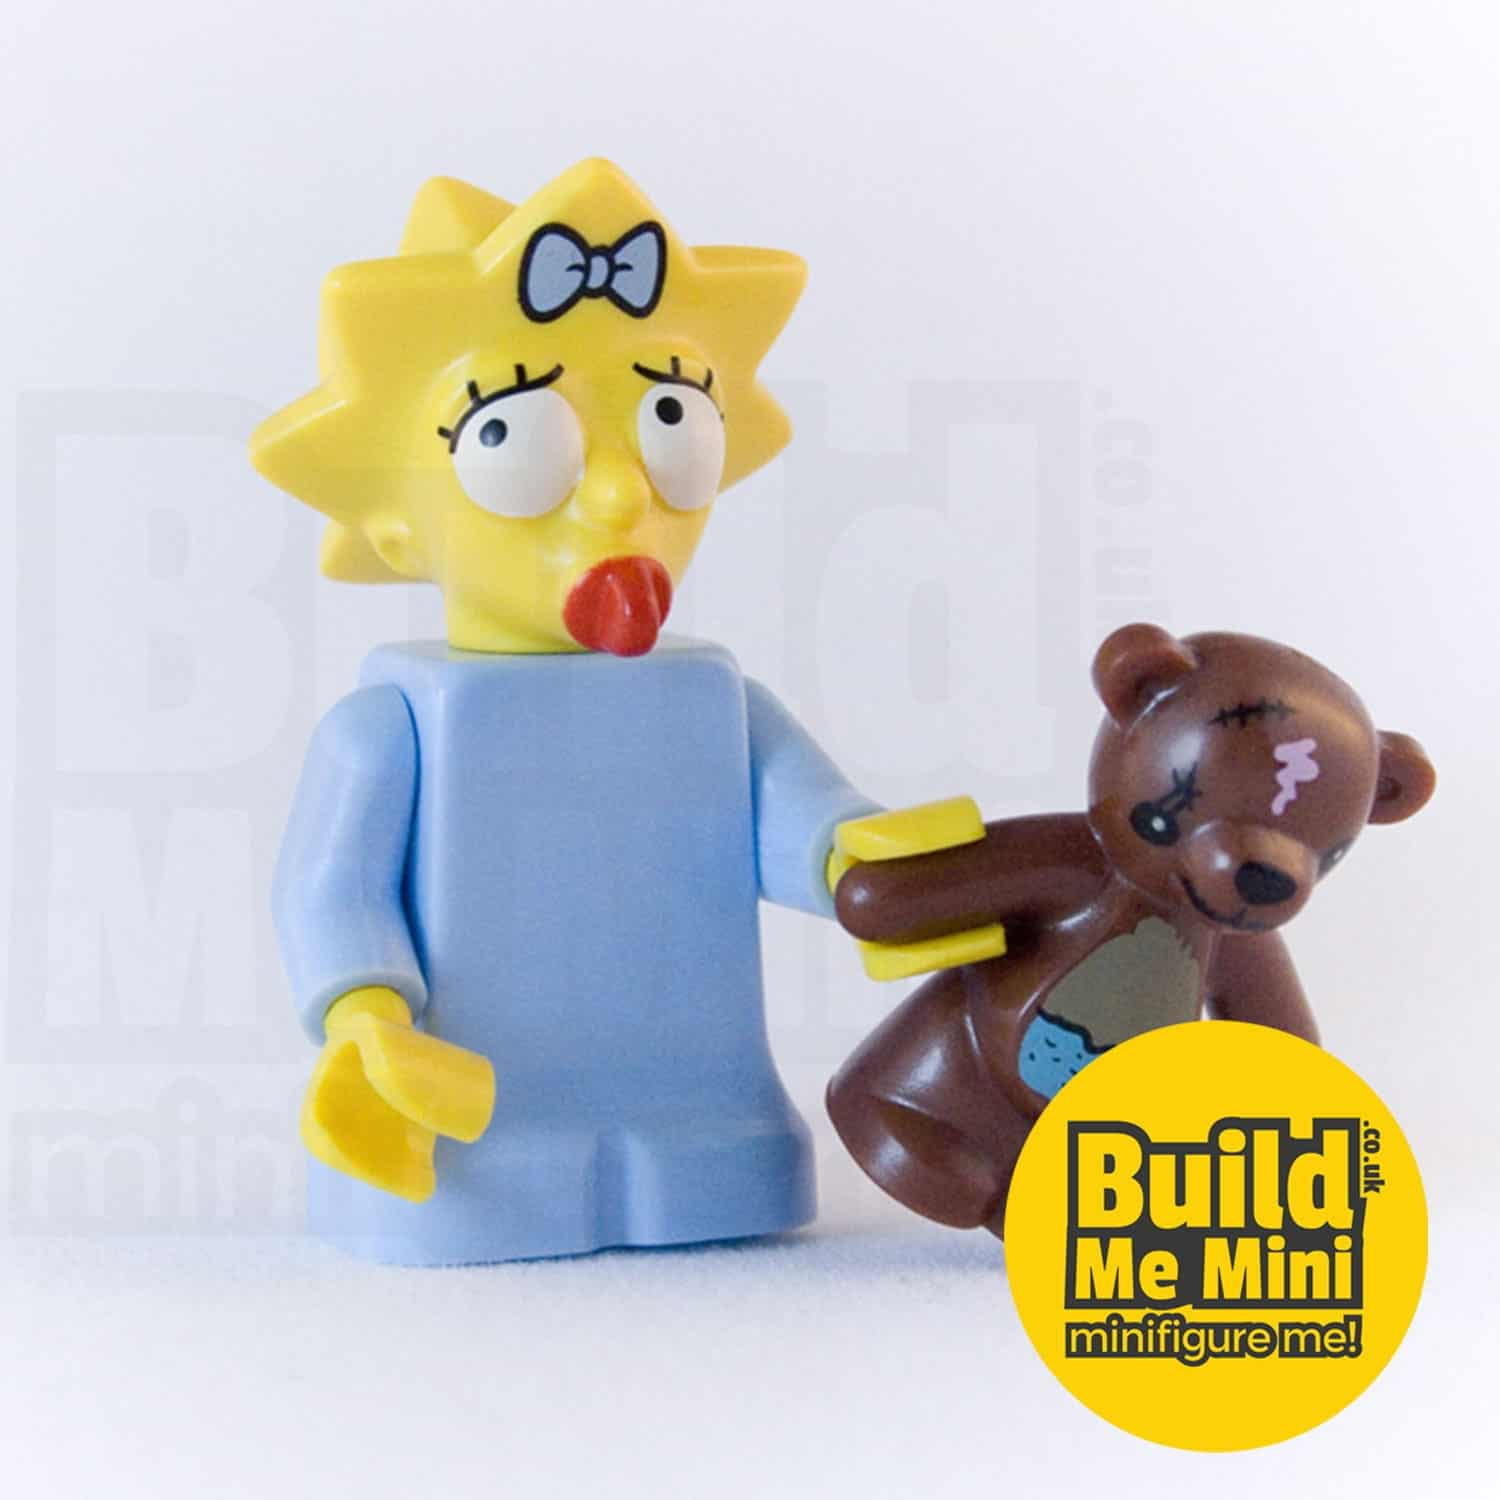 LEGO Simpsons Maggie Simpson Minifigure